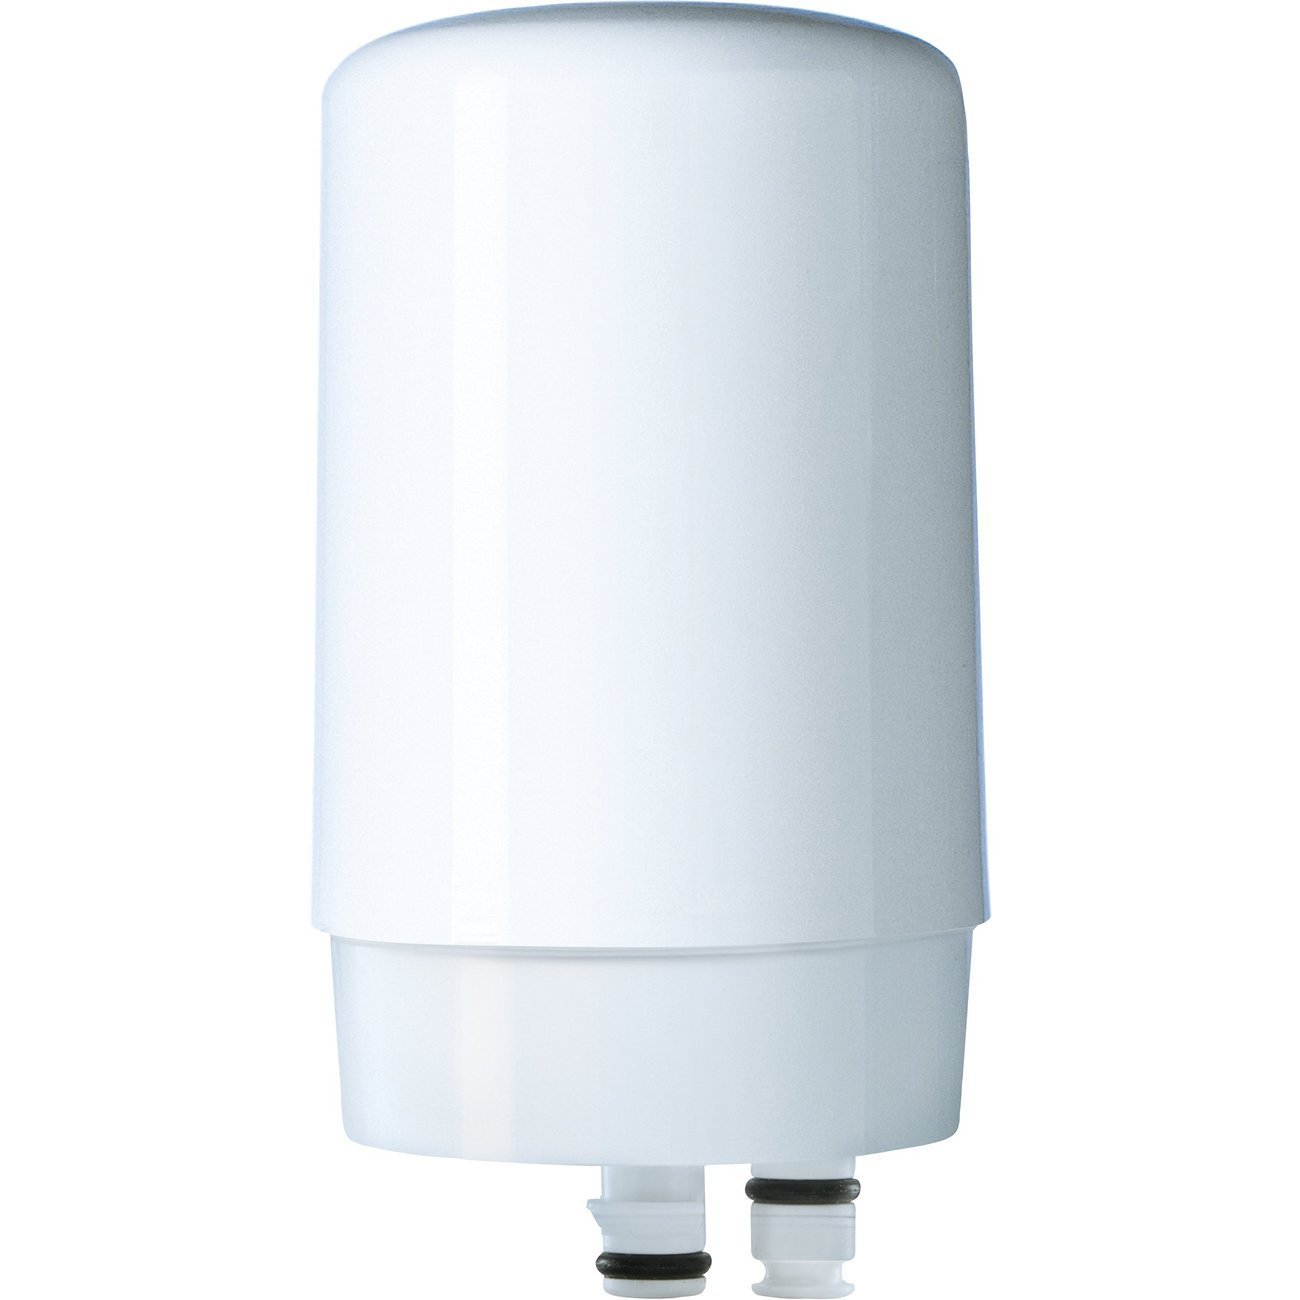 Brita On Tap For Faucets - White - 1 Count